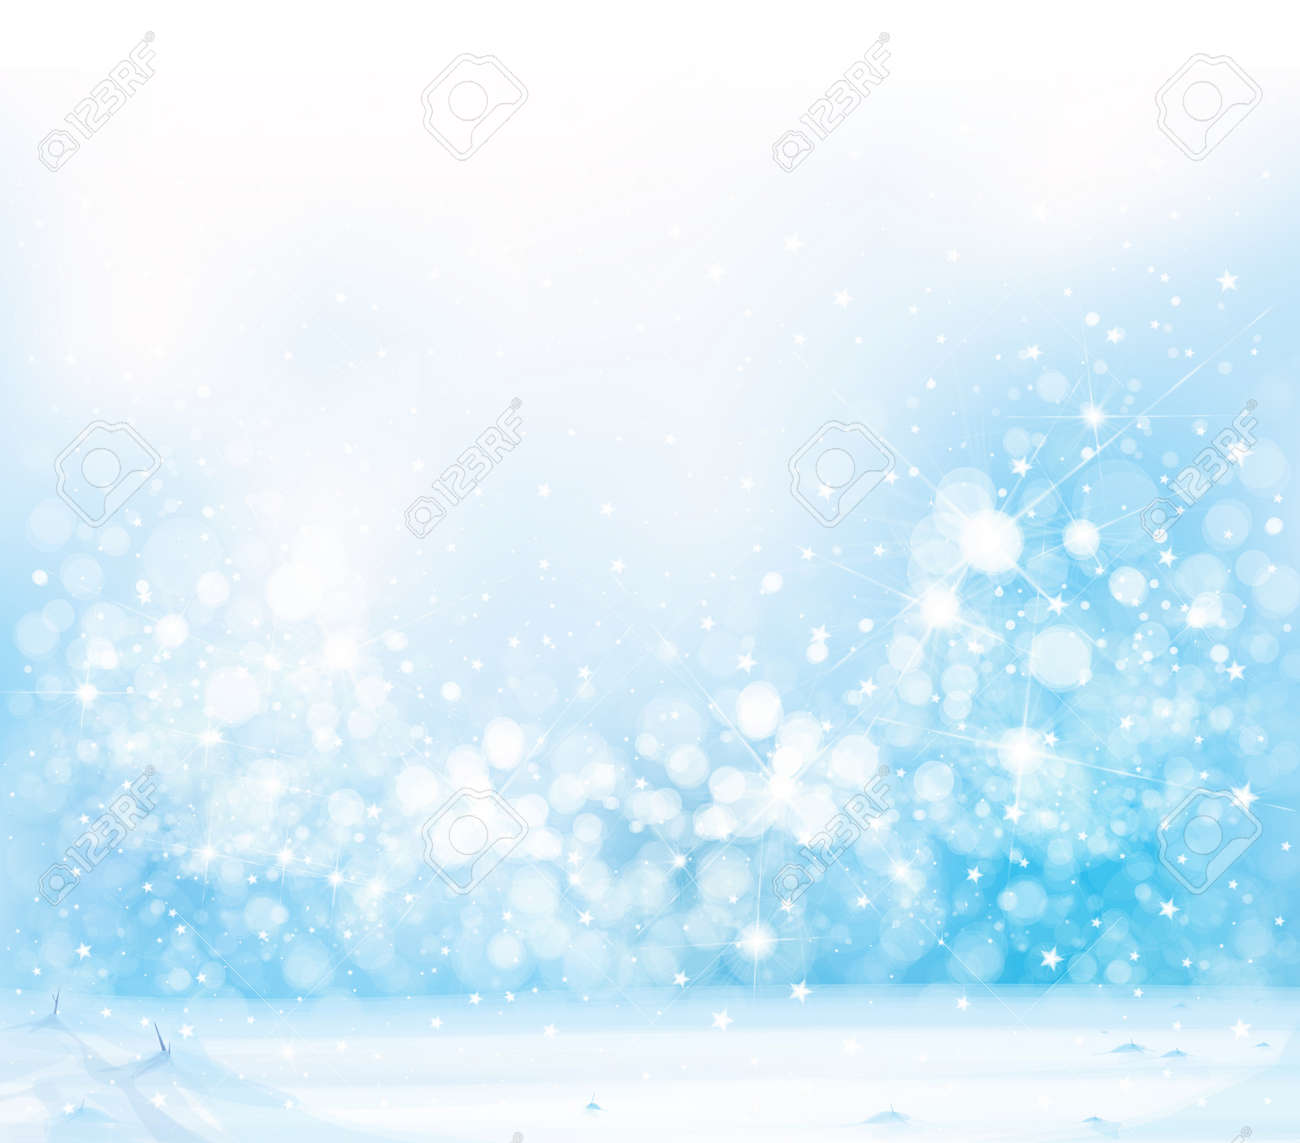 Vector blue, snowy background for Christmas design. Winter background. - 156803240